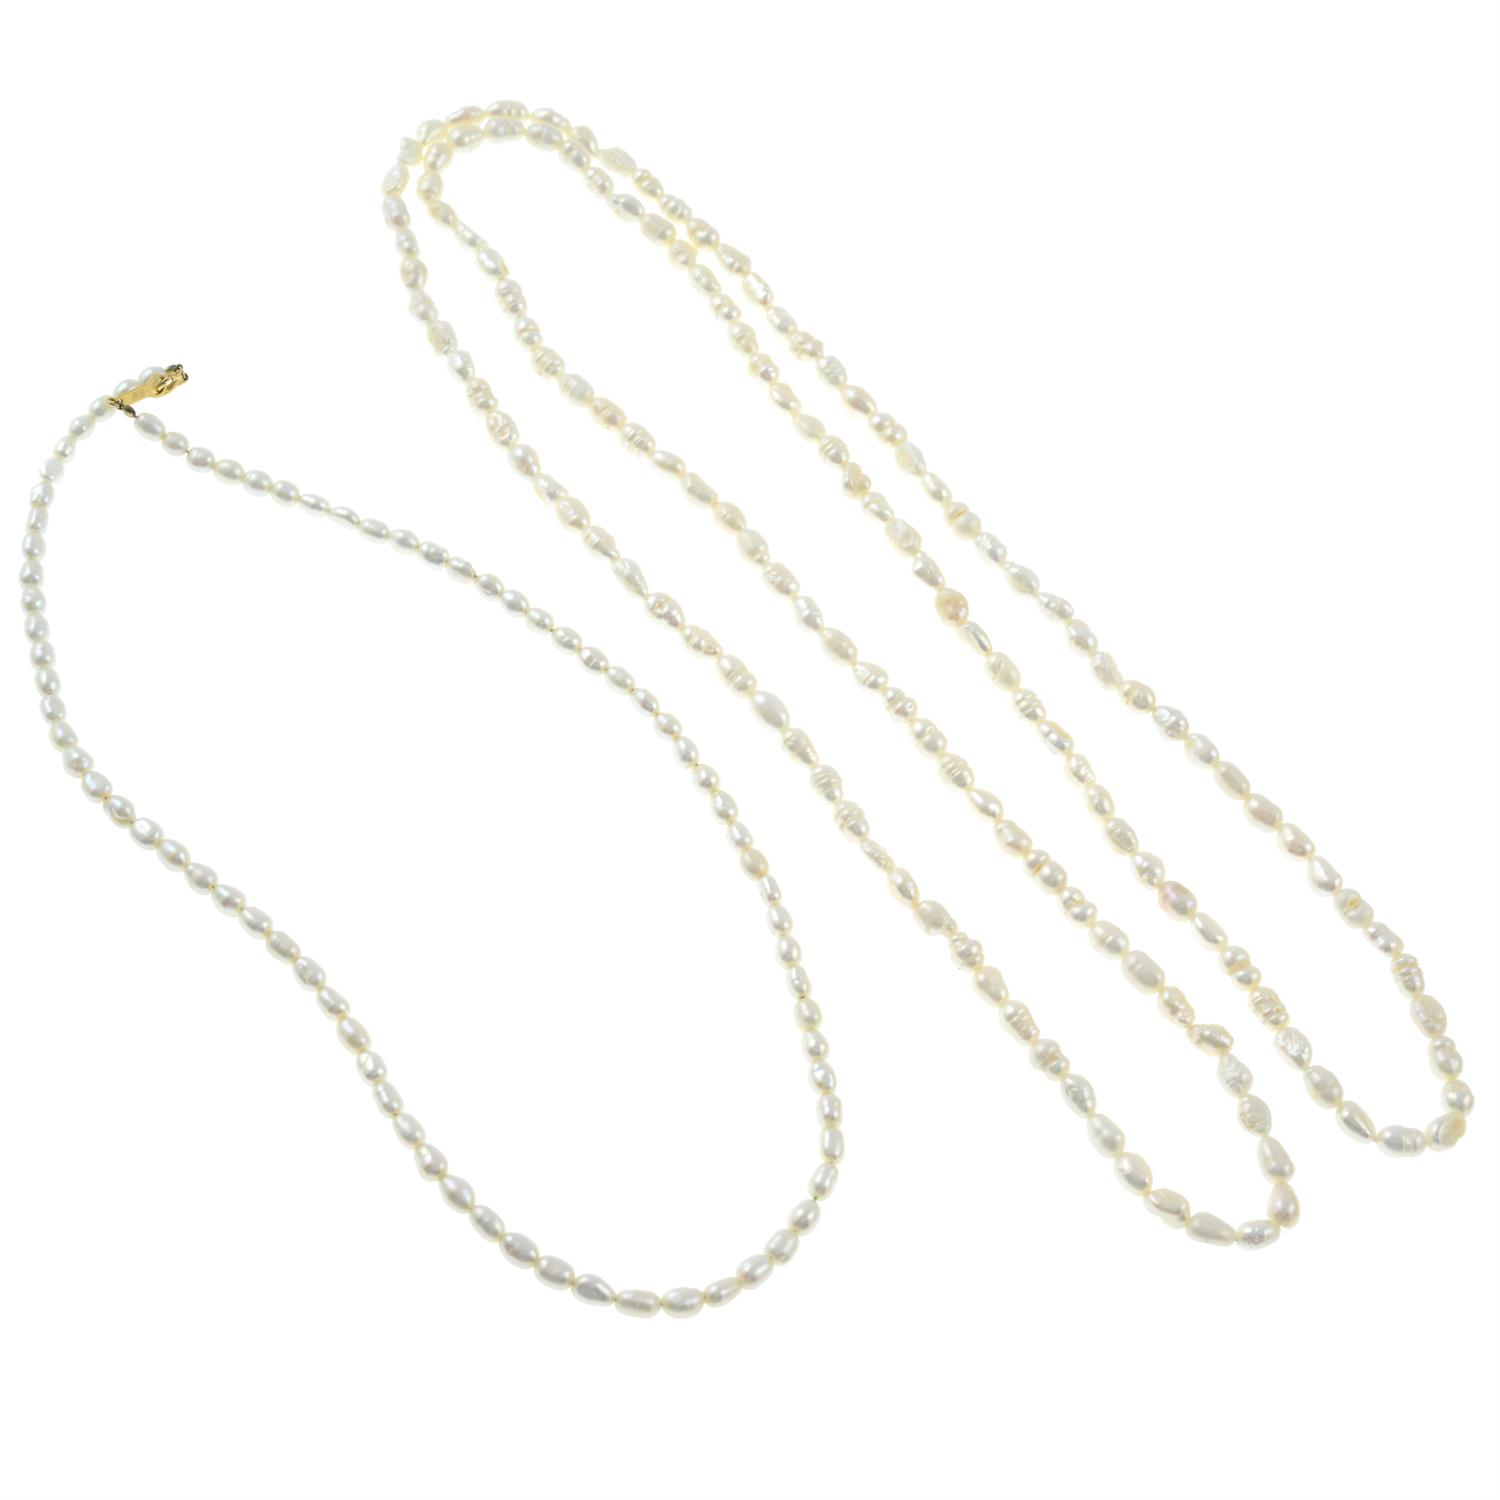 Two cultured pearl necklaces. - Image 2 of 2